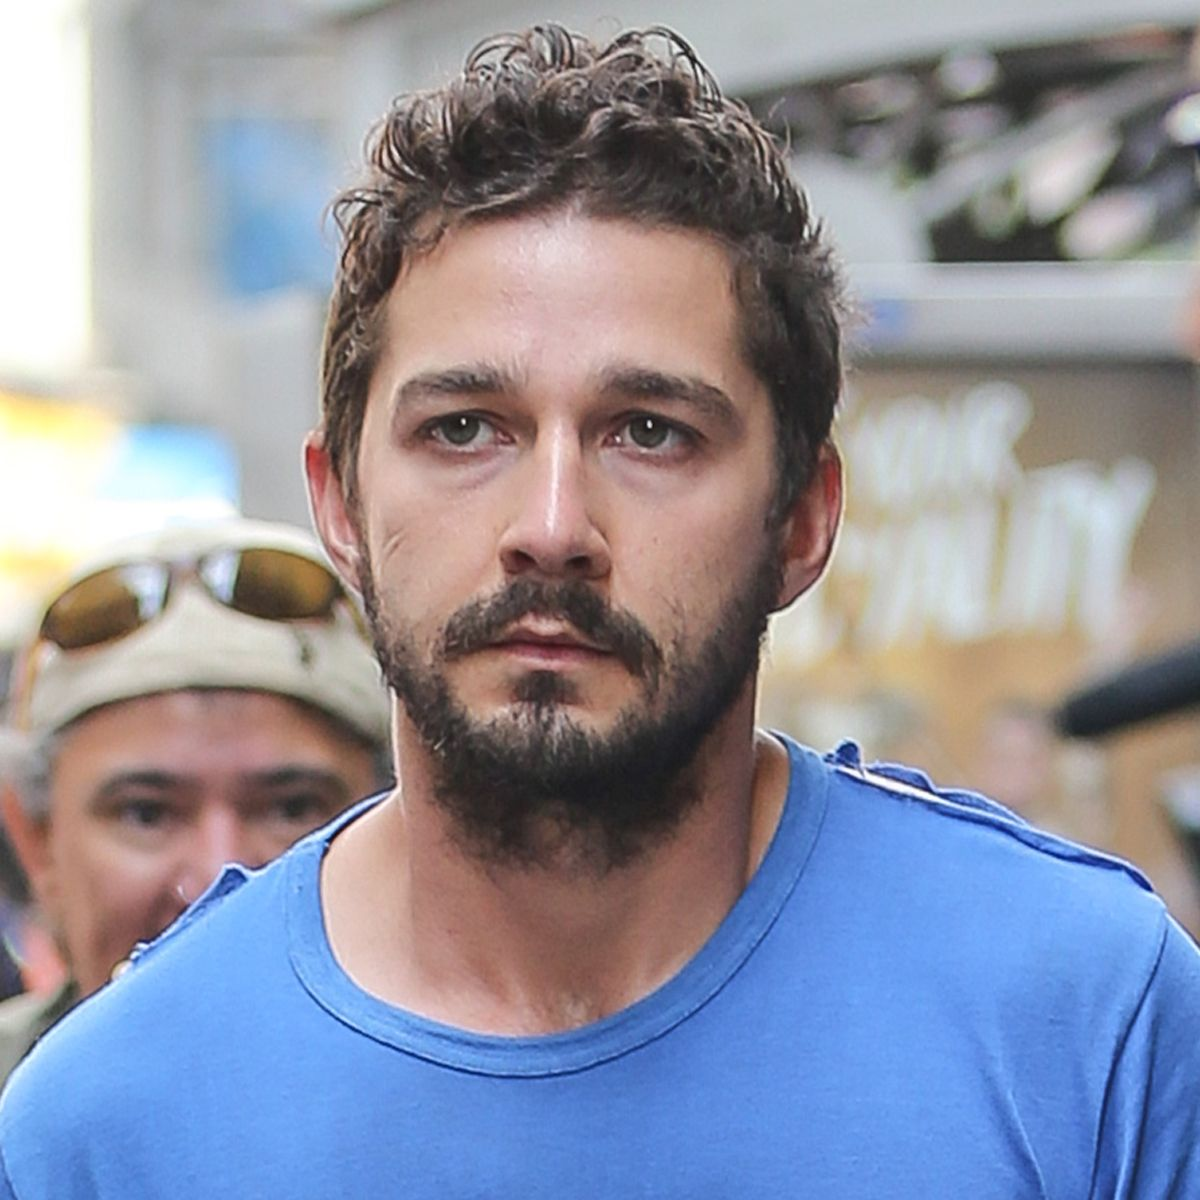 What the eff is going on with Shia? 'I'll F**k You Up